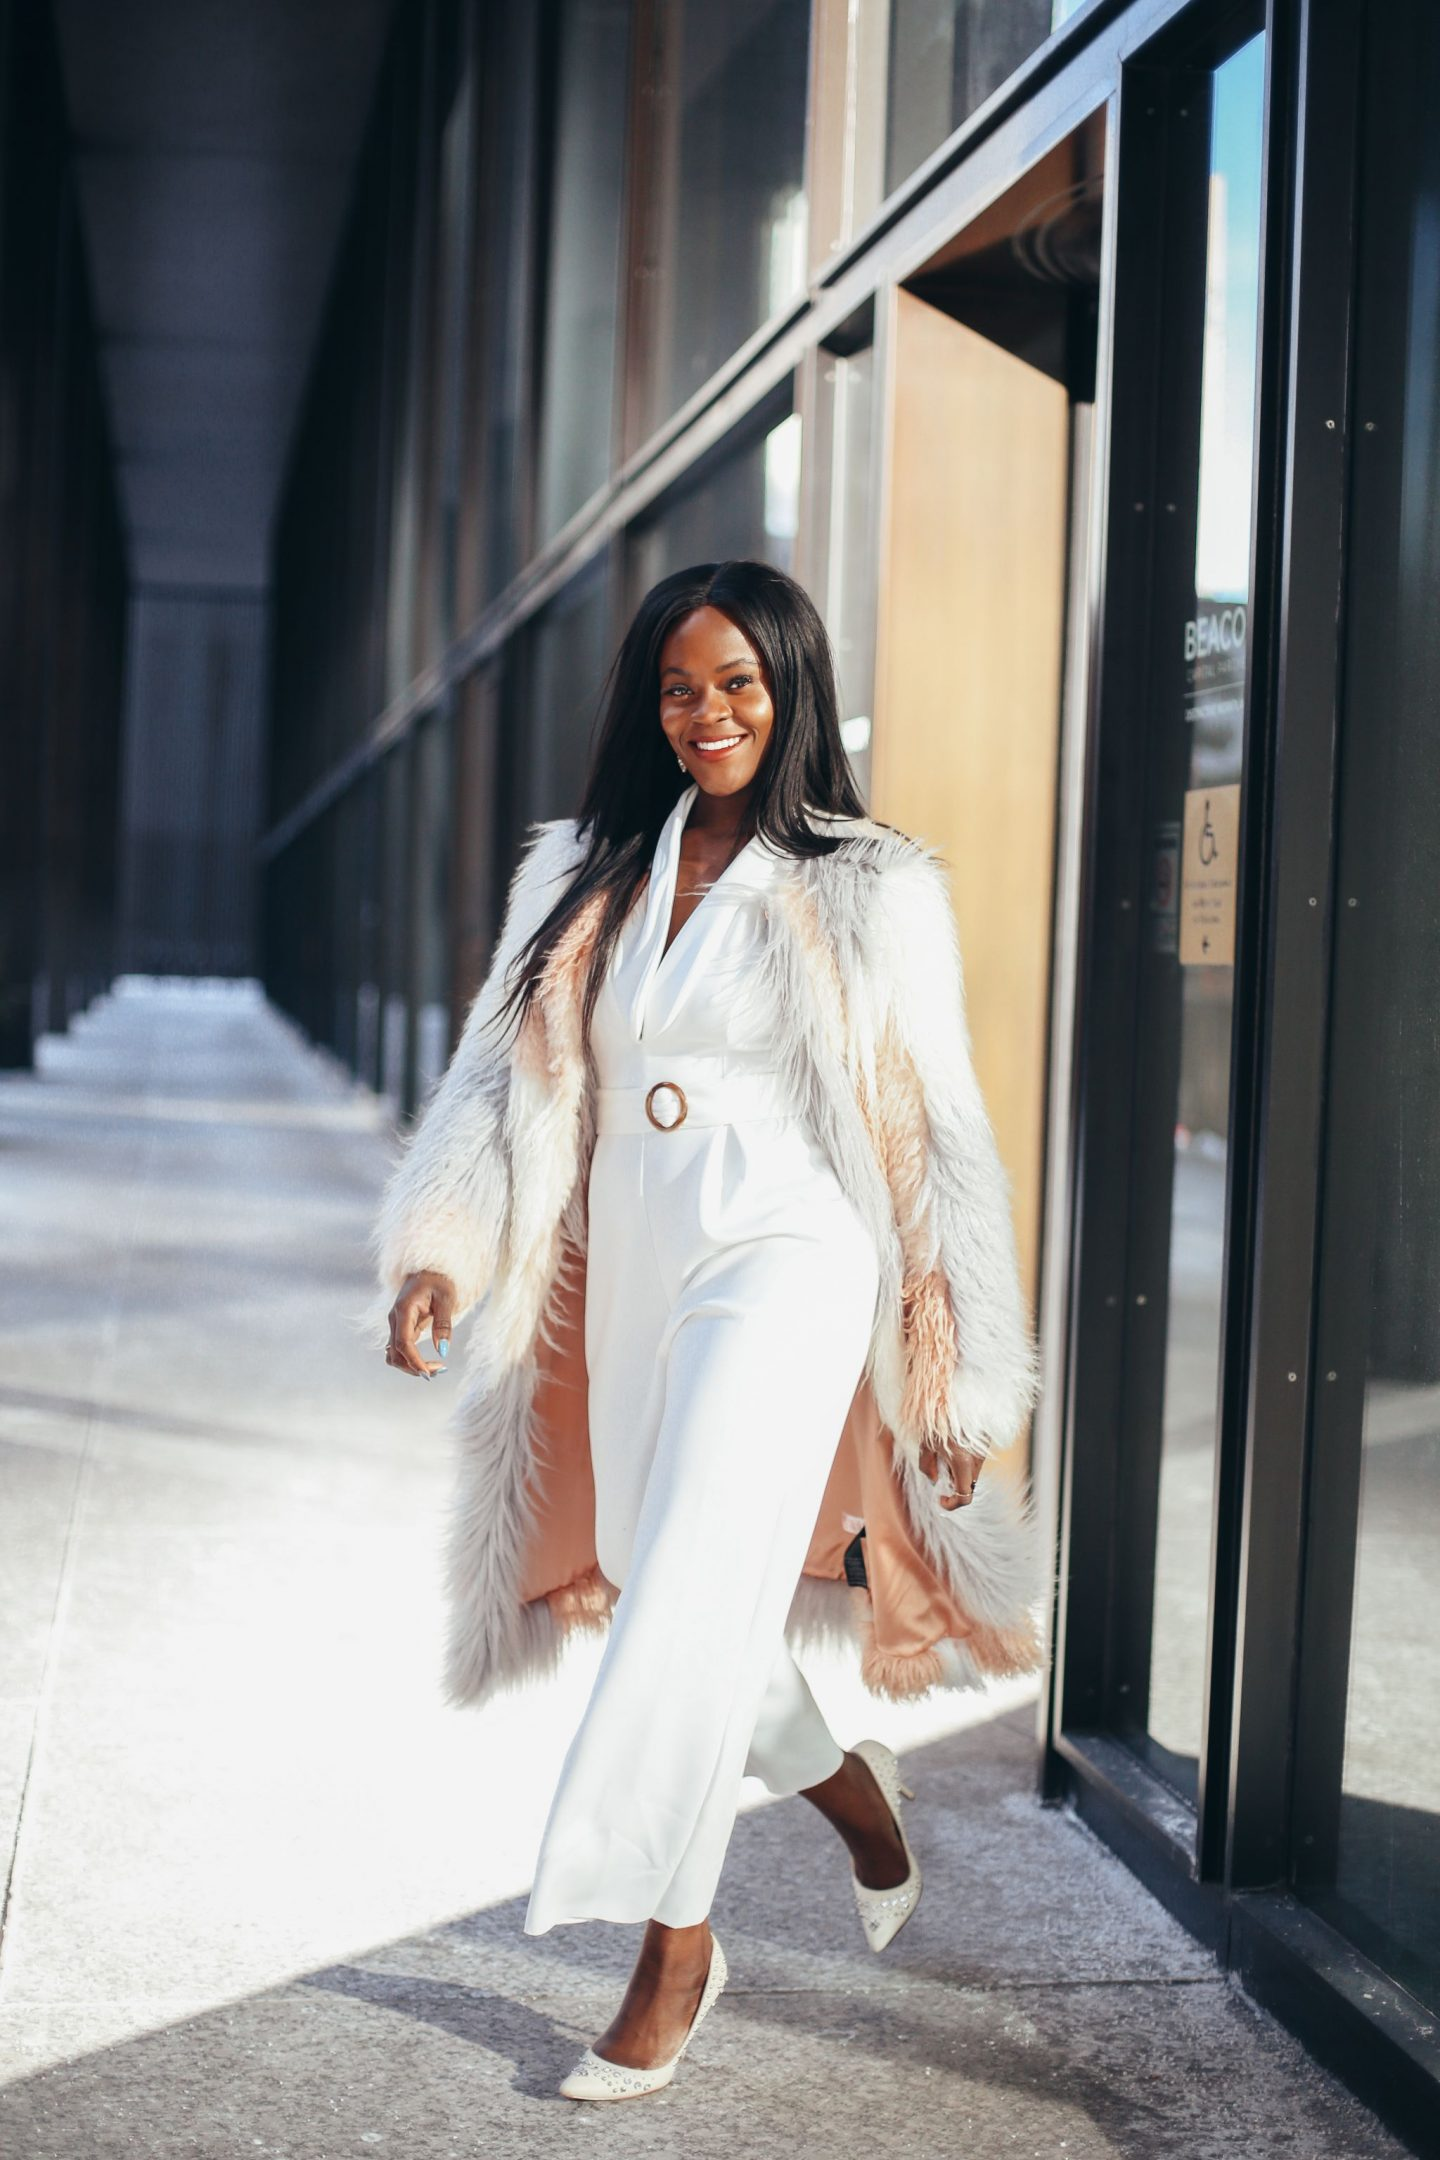 Transitional style: White jumpsuit